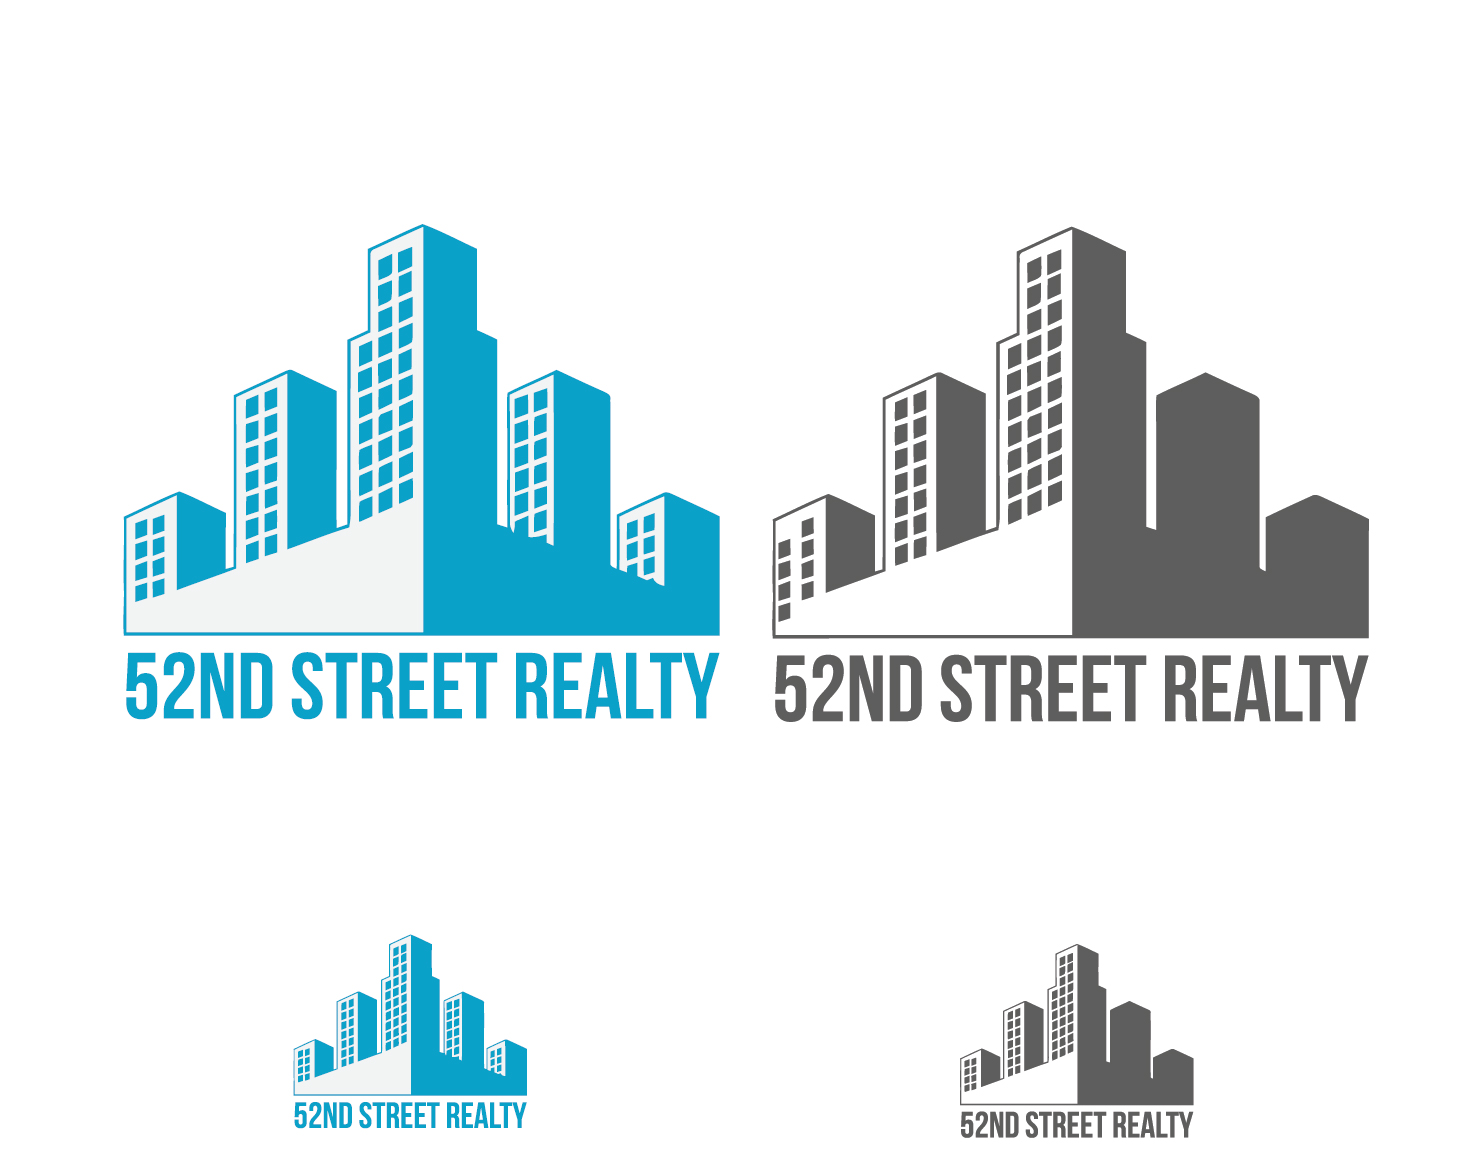 Logo Design by VENTSISLAV KOVACHEV - Entry No. 32 in the Logo Design Contest 52nd Street Realty Logo Design.